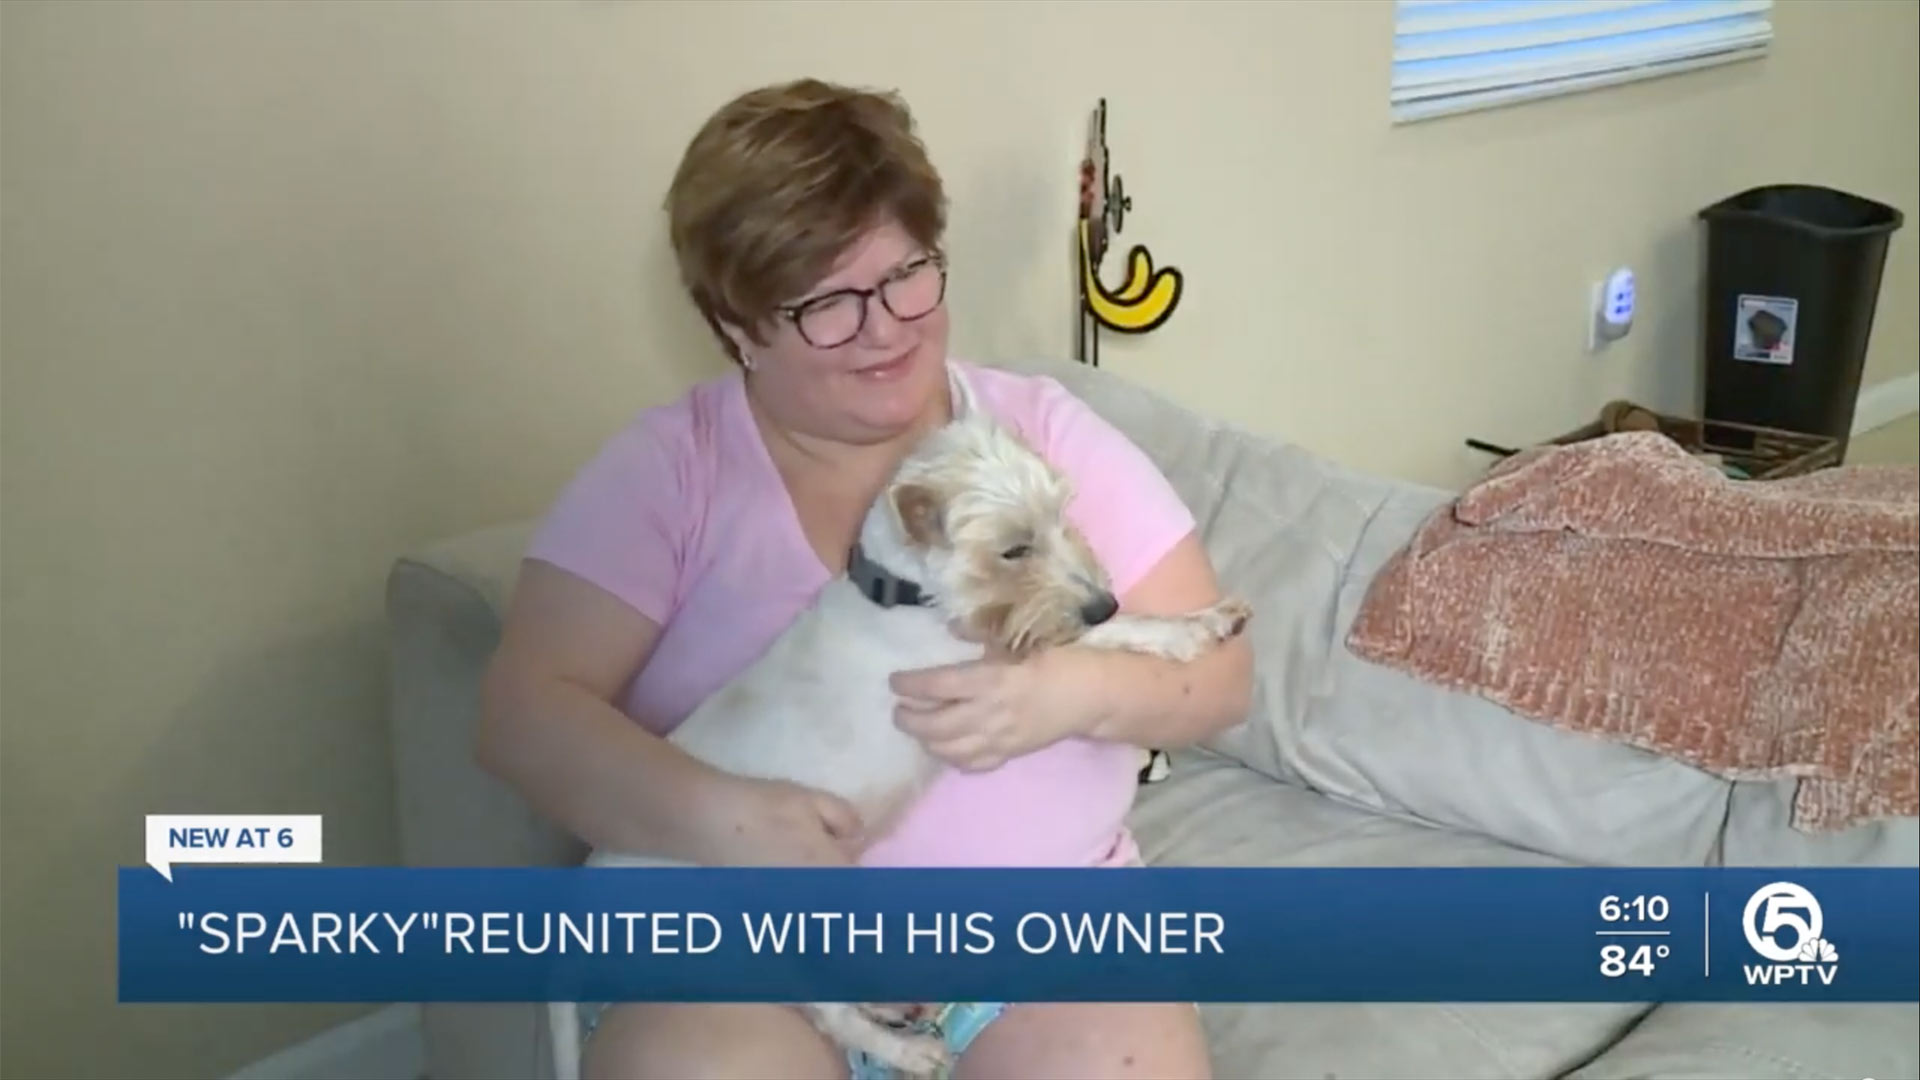 Florida woman spots missing dog on FB and is reunited